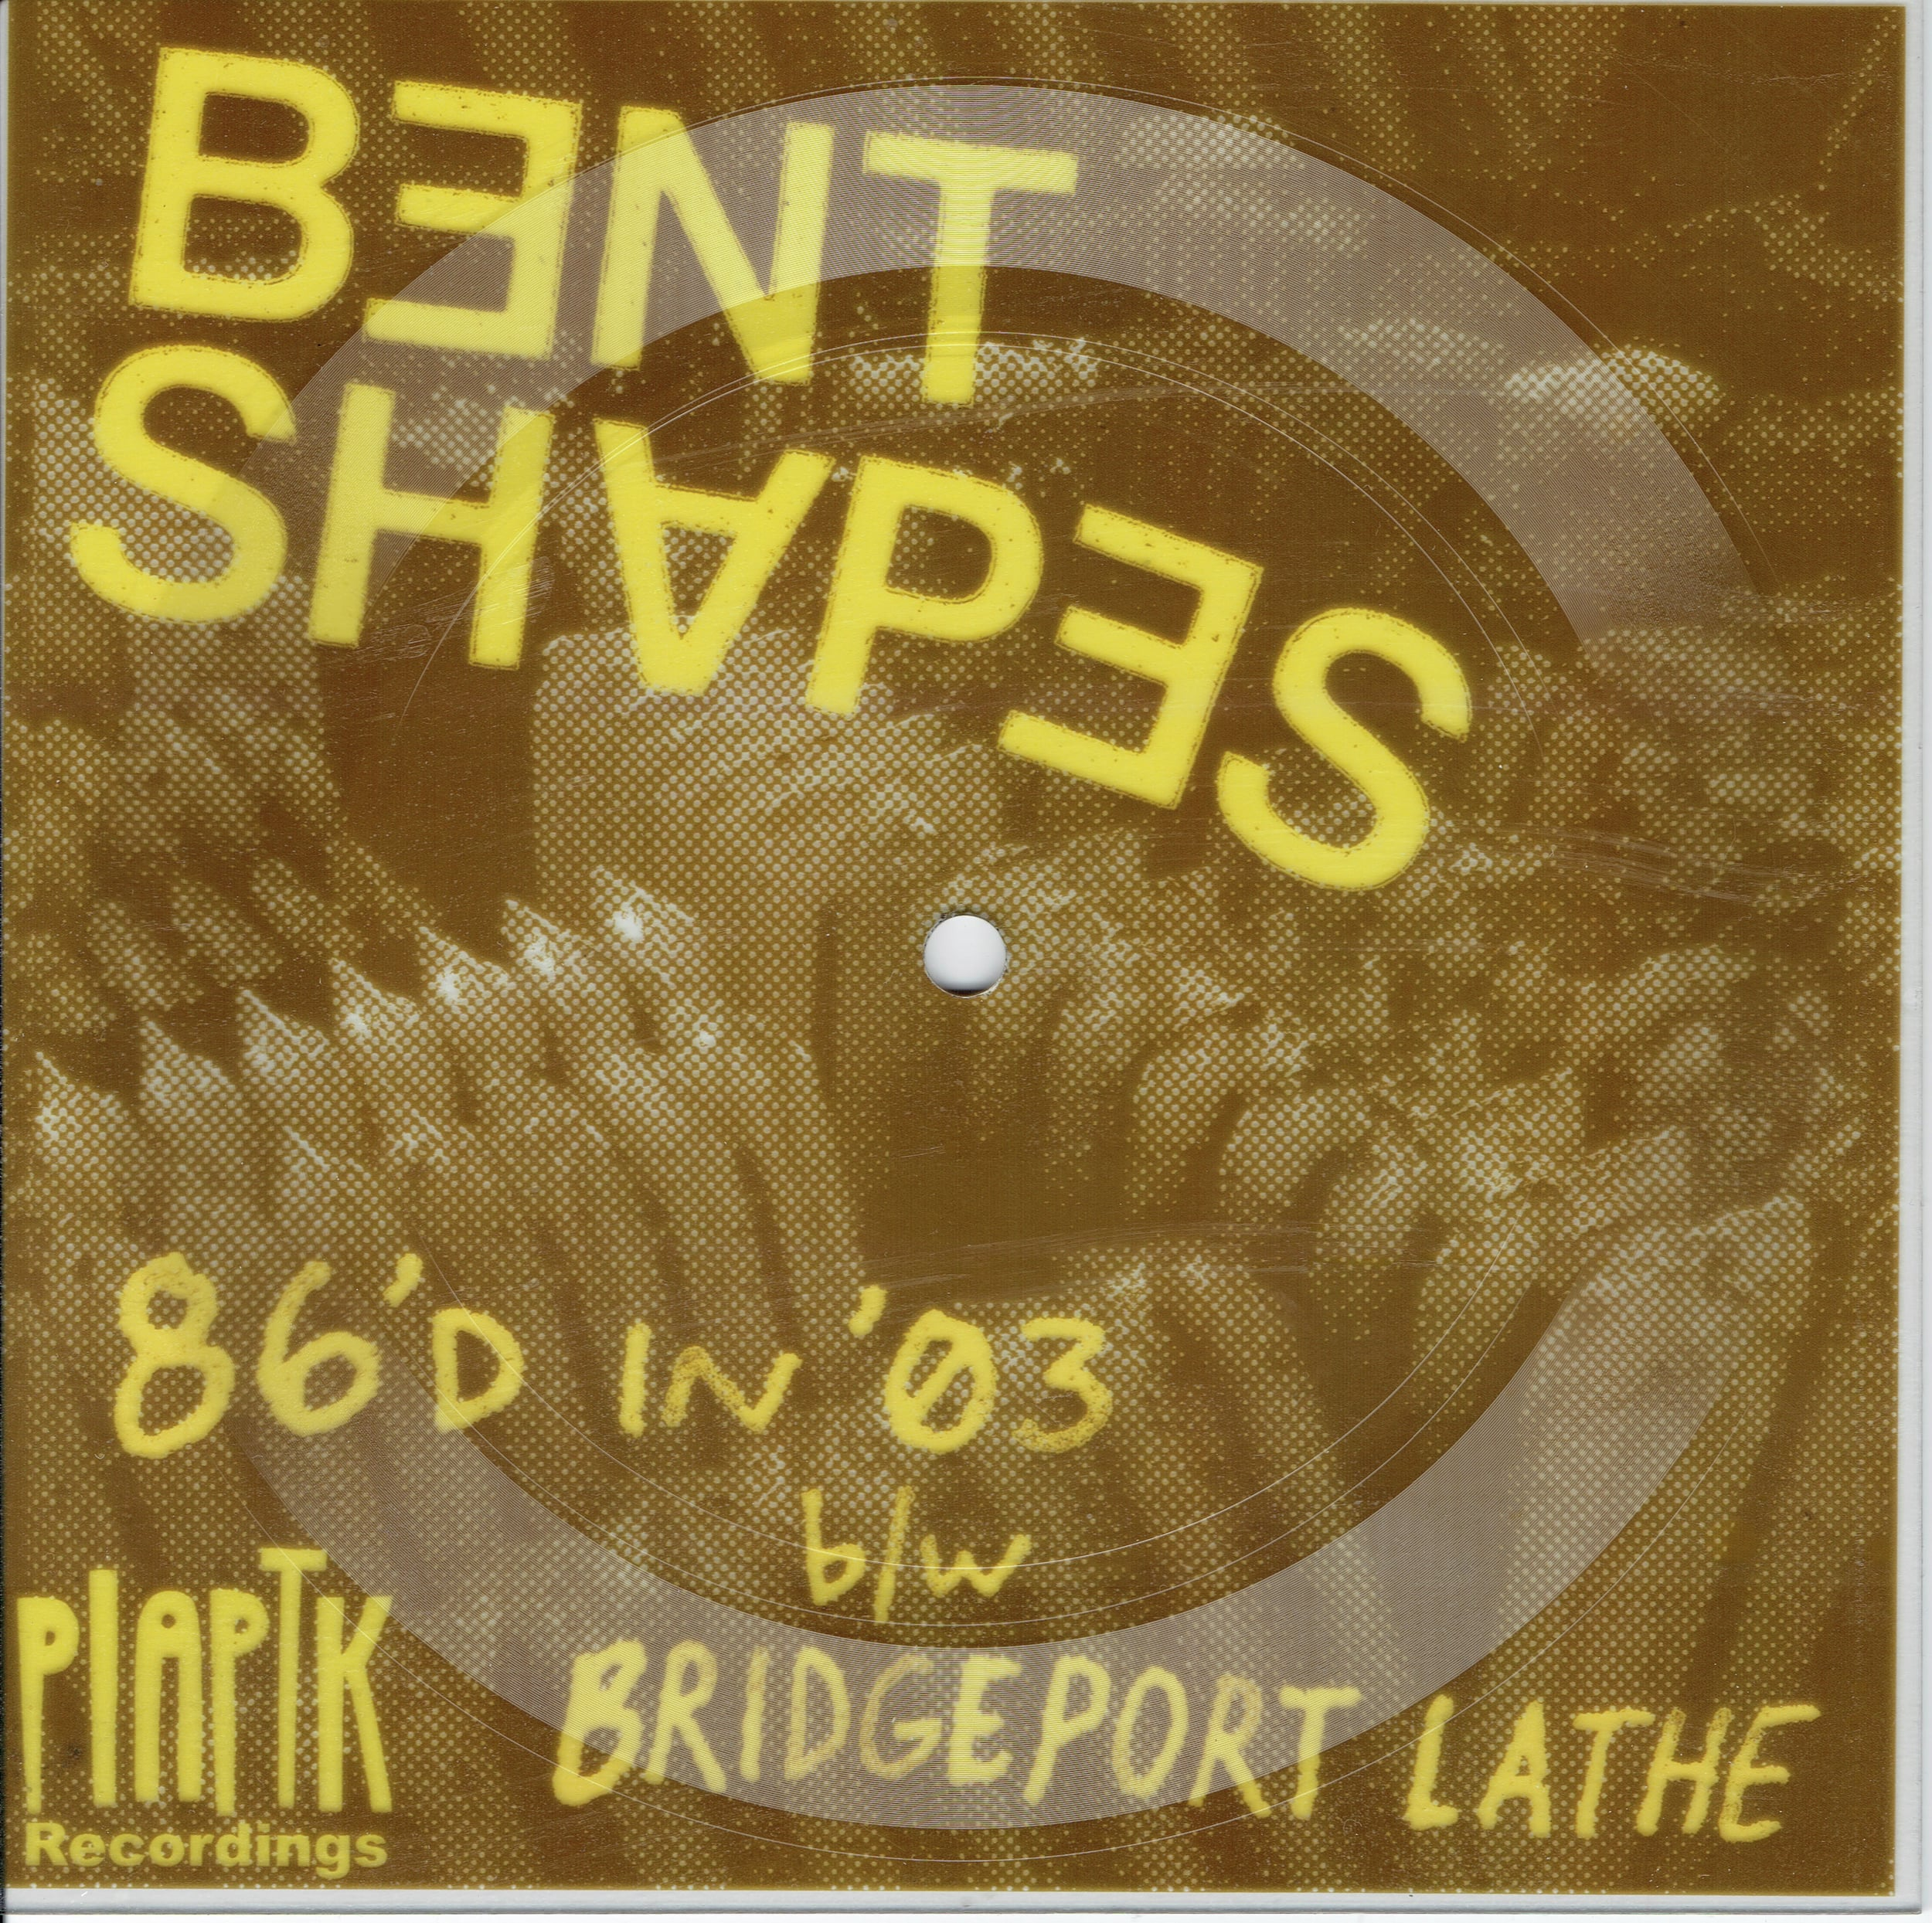 86'd in '03 b/w Bridgeport Lathe - Released july 25, 2014 on People in a position to know